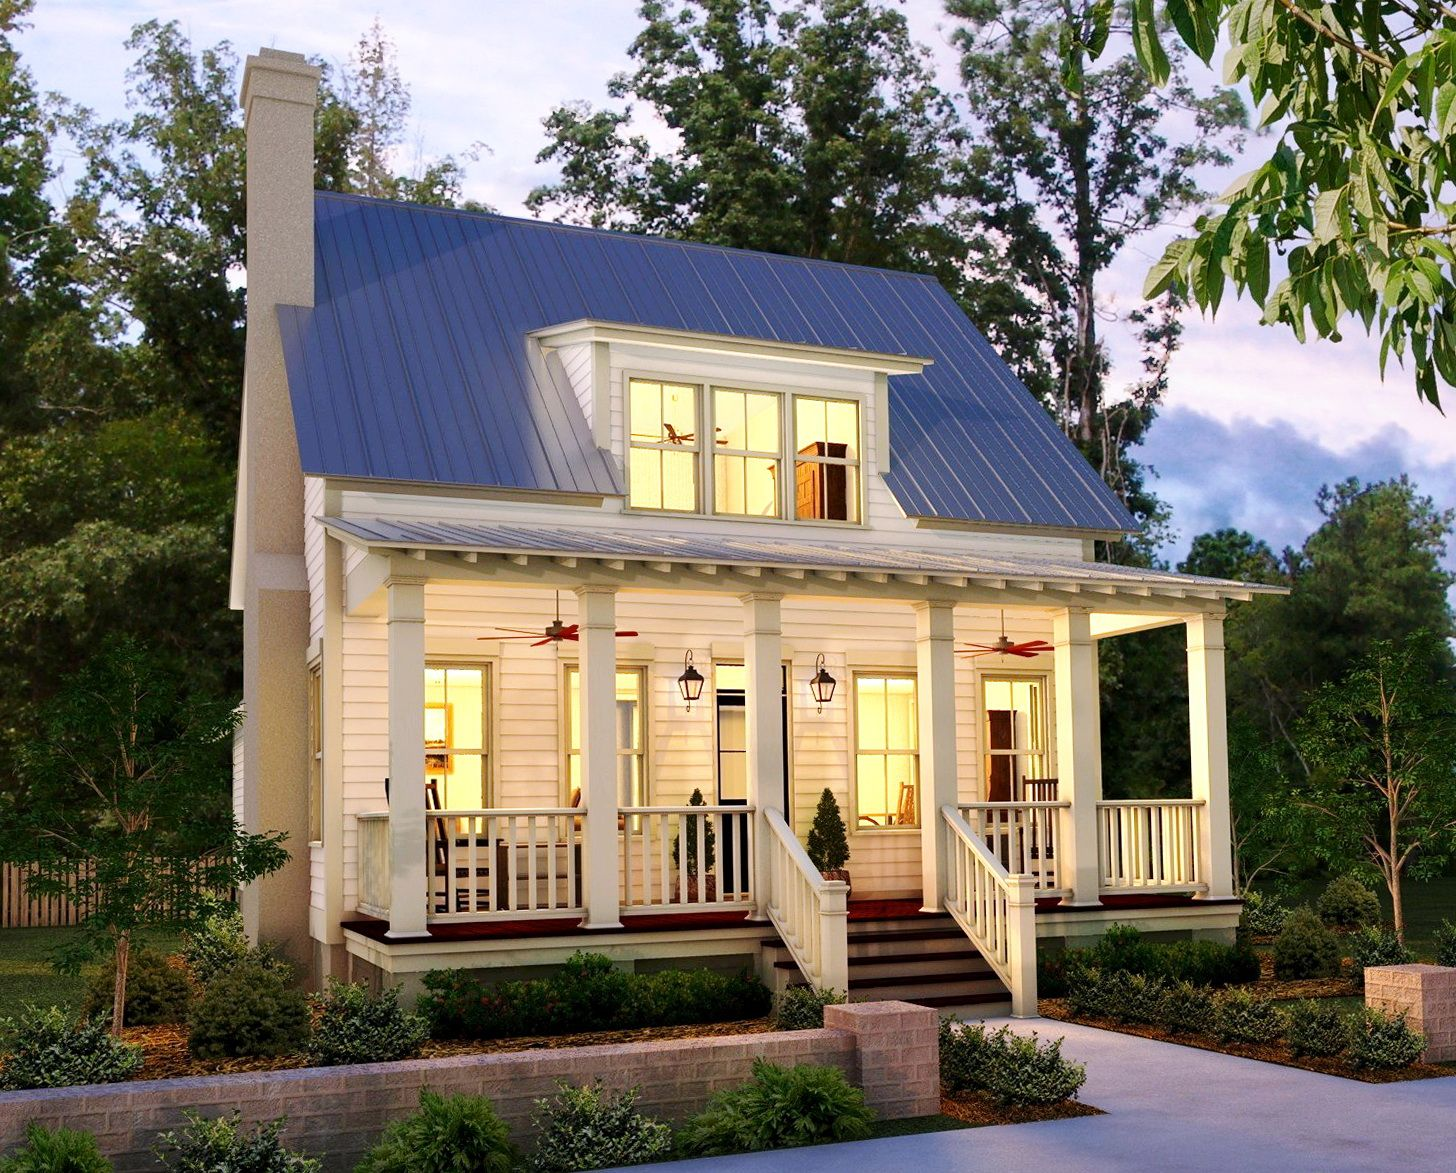 Small country house and floor plans designs images for Tiny house plans with porches